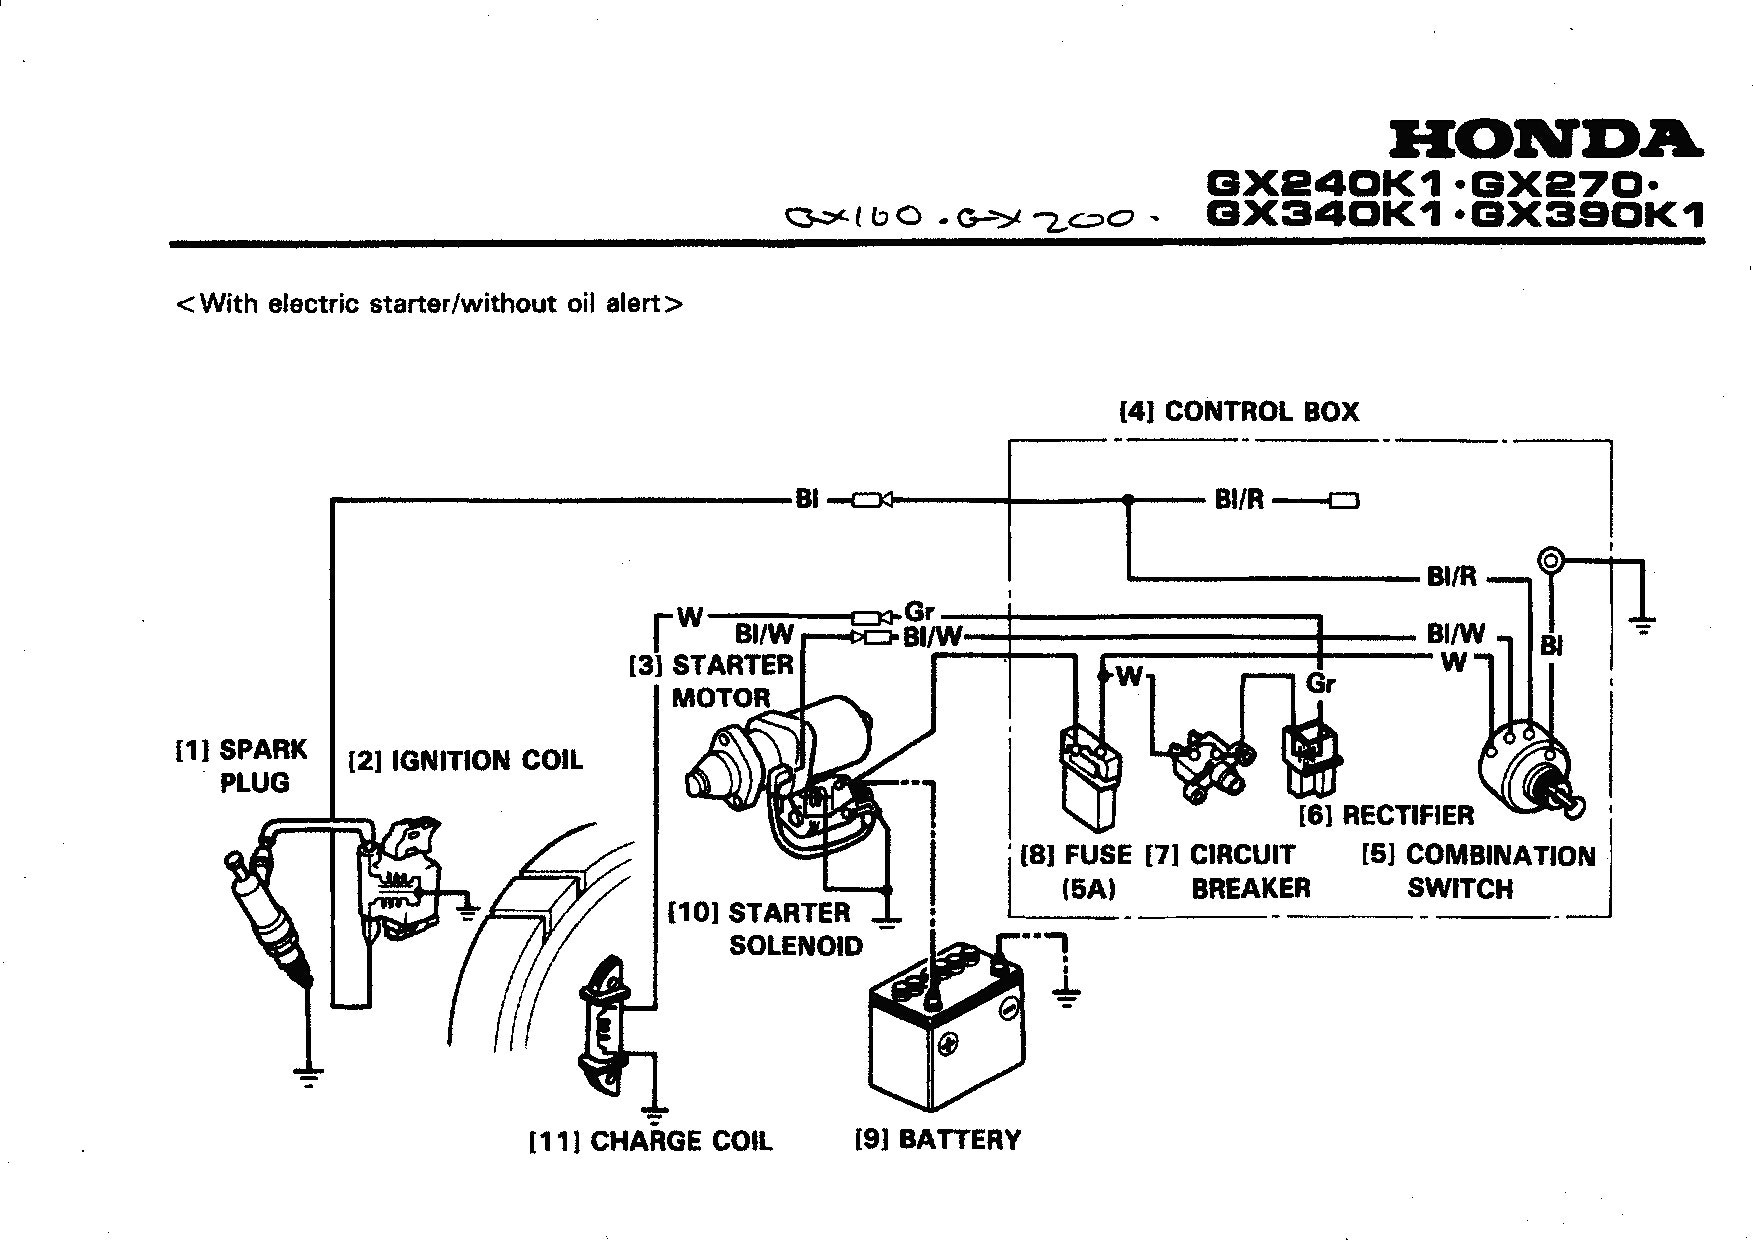 hight resolution of 9 hp honda engine wiring diagram wiring diagram sheet honda 1 6 engine diagram